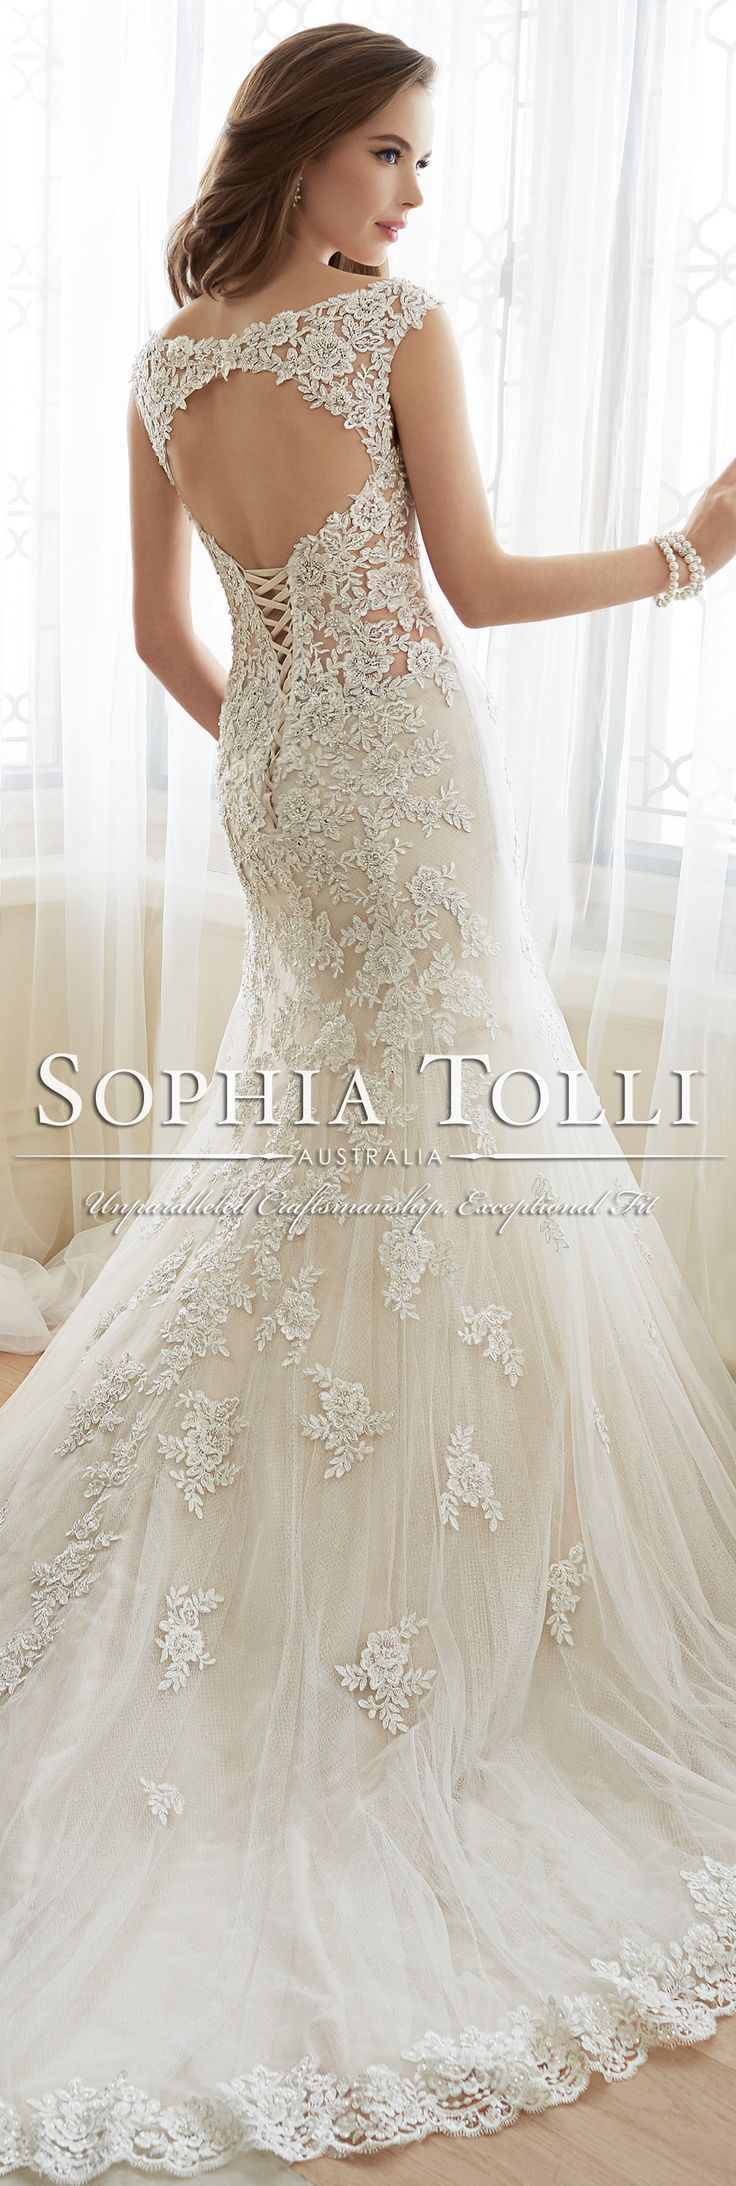 White Vs Ivory Wedding Dresses Sophia Tolli